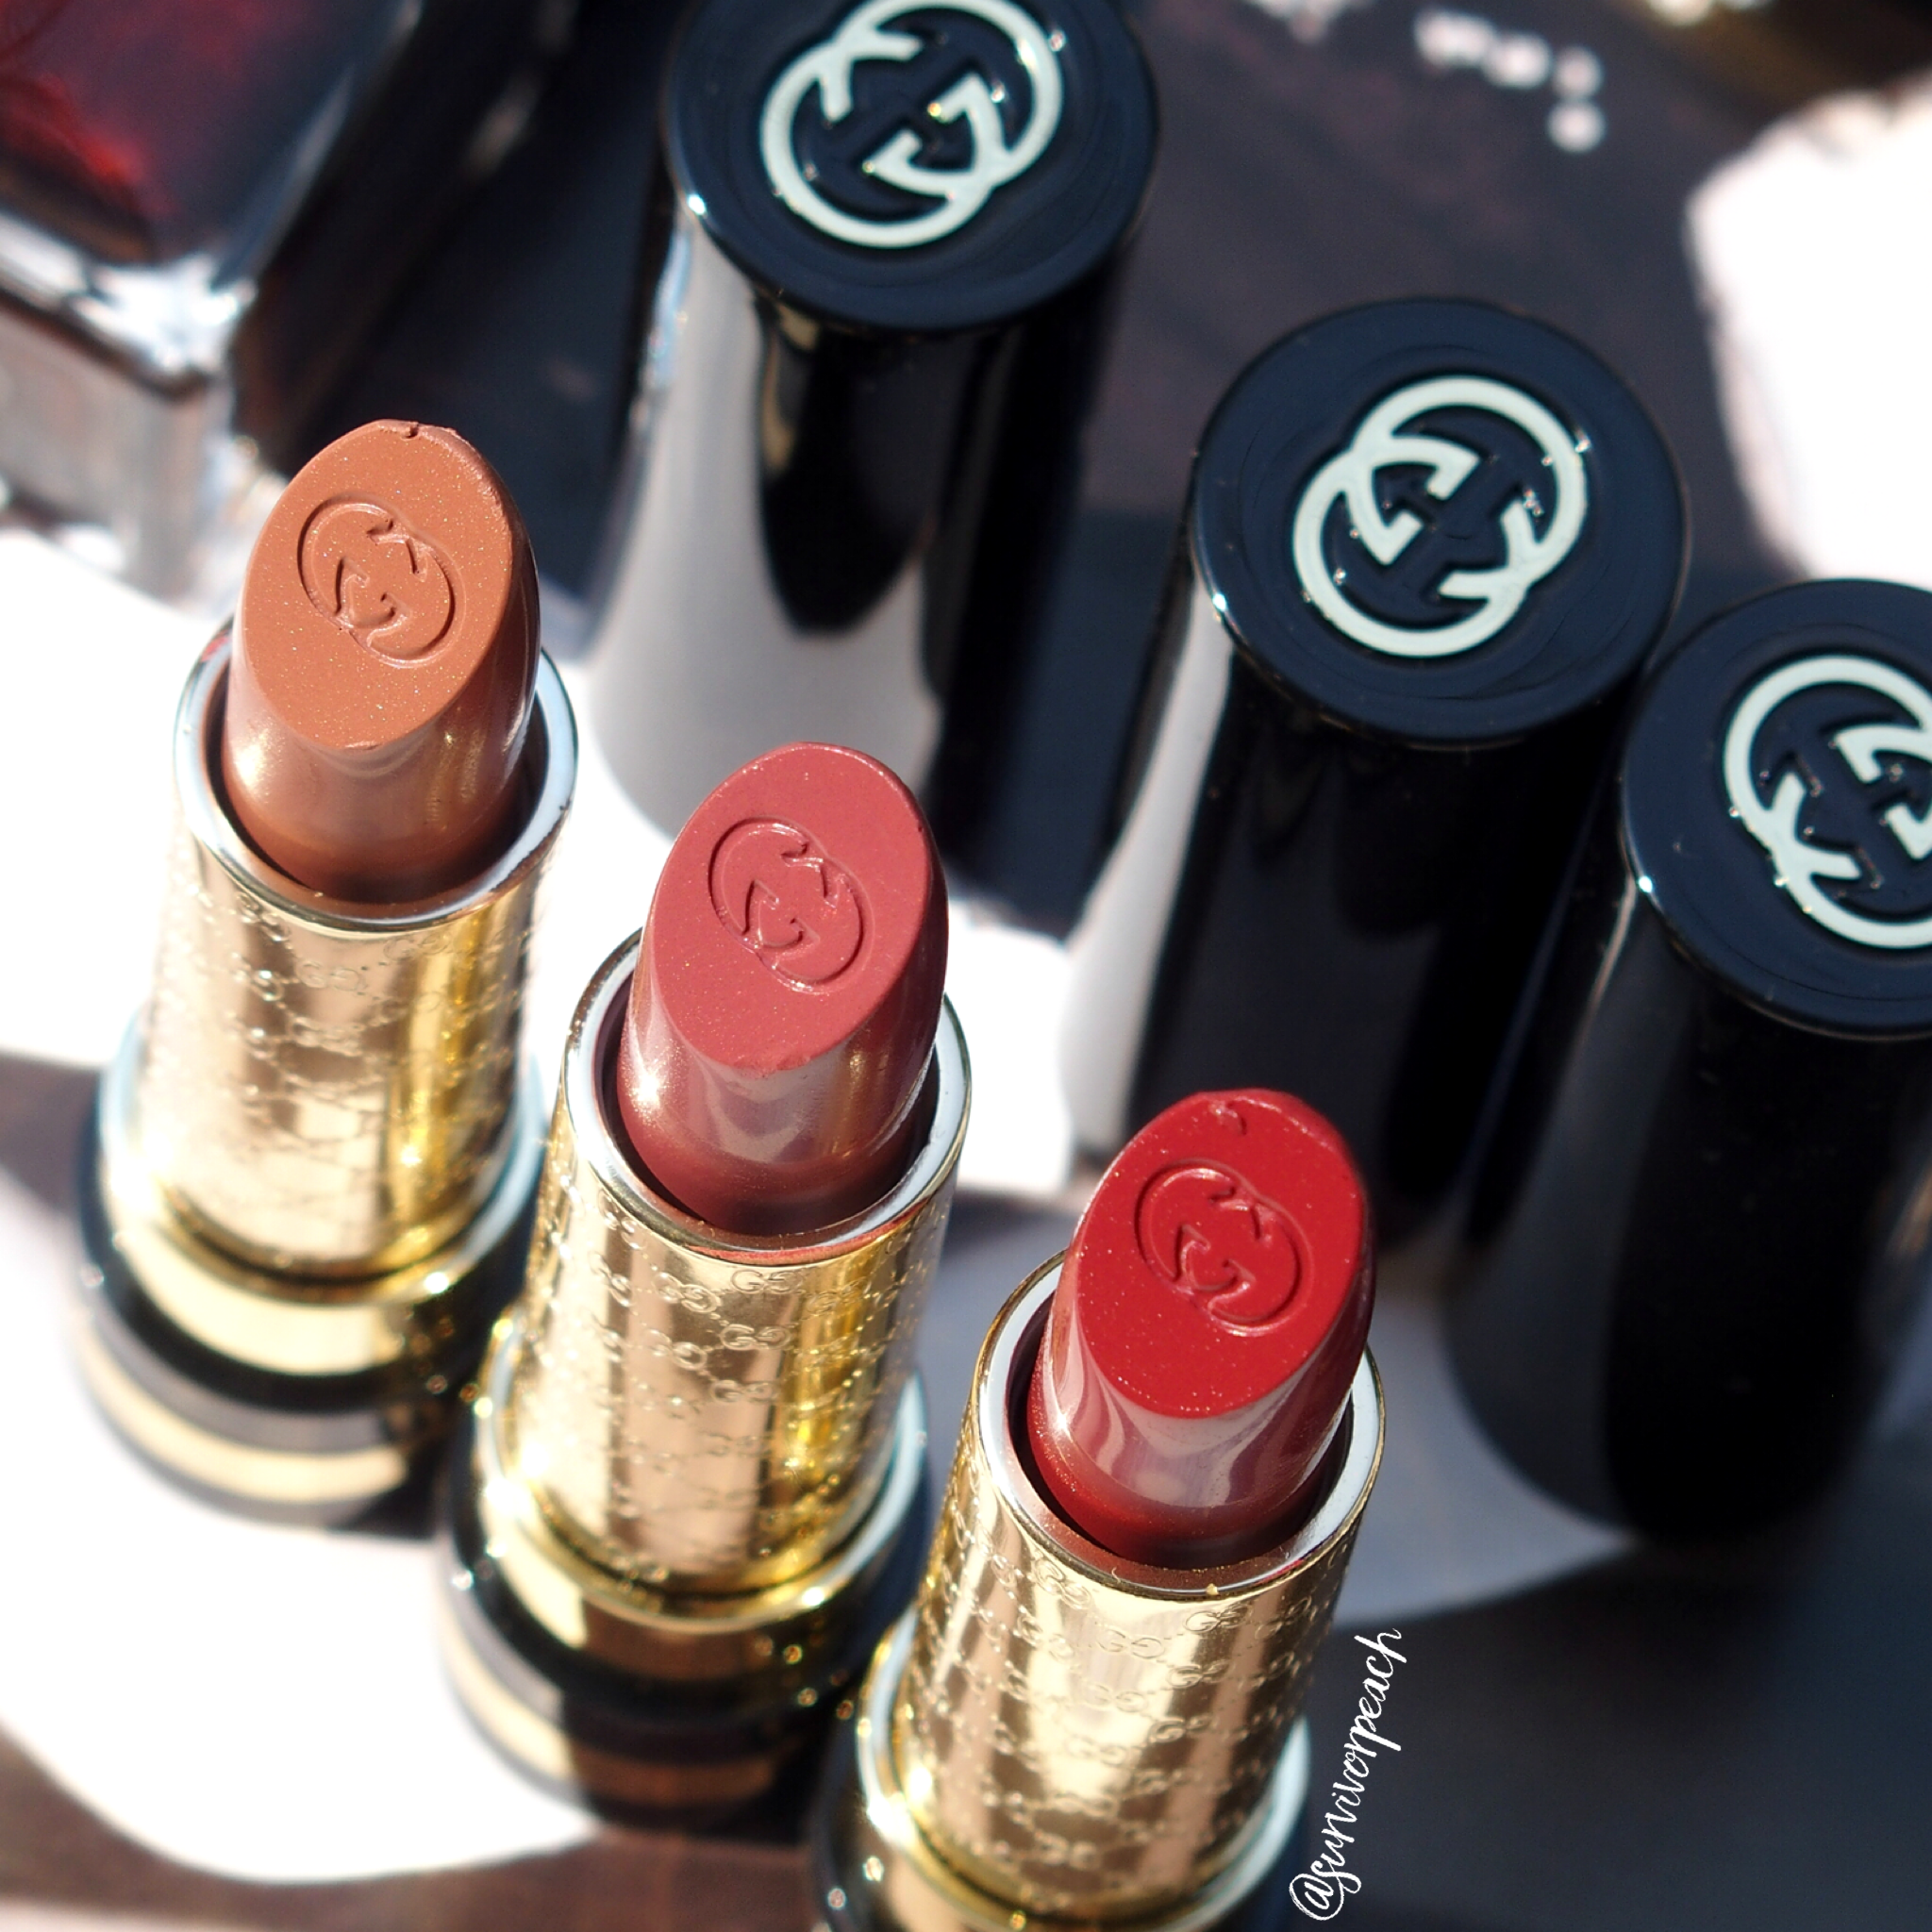 Gucci Luxurious Moisture Rich lipstick in #330 #570 and #580.